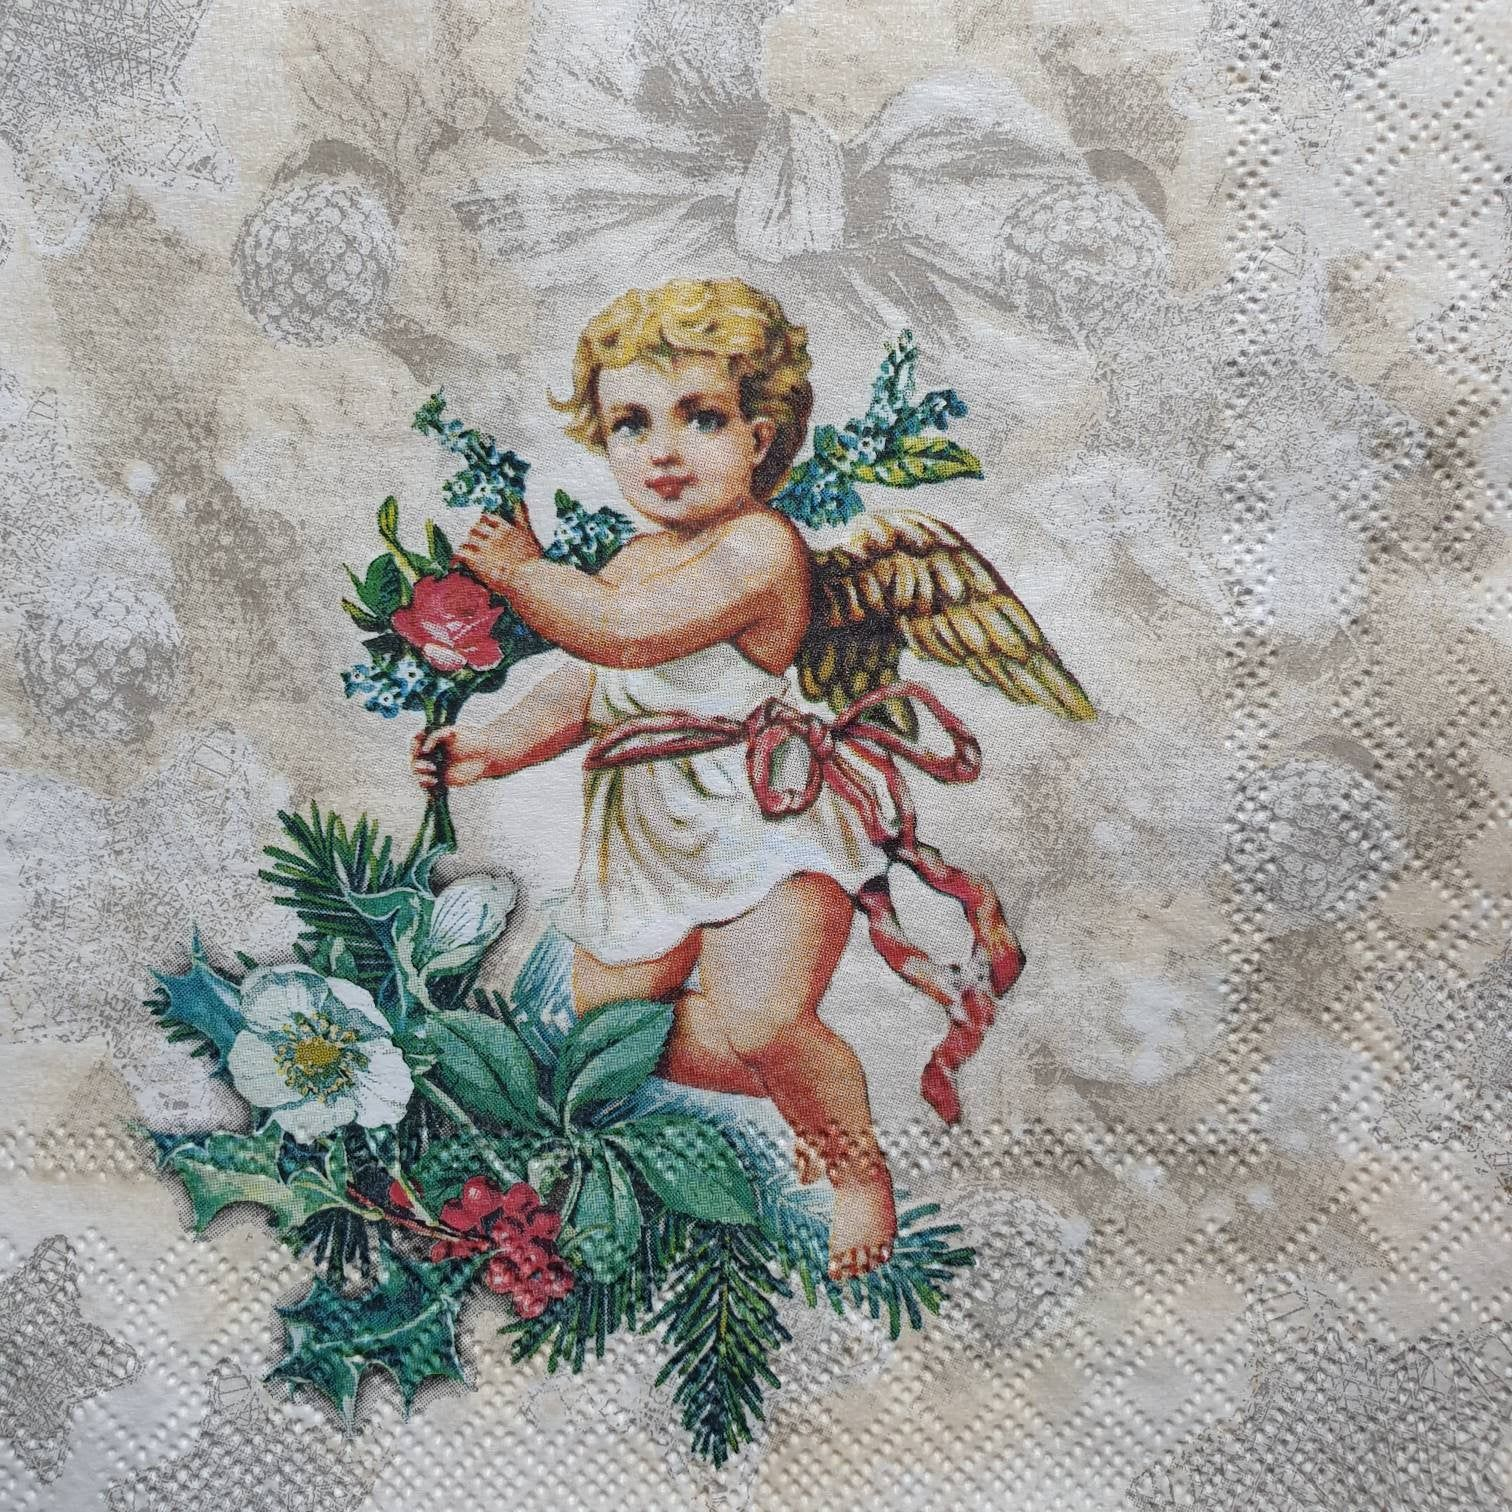 Beautiful Angel Paper Napkins perfect for Decoupage, Vintage Style Paper Napkins, Lunch Napkins,Stunning Napkins, Decoupage Paper Collection